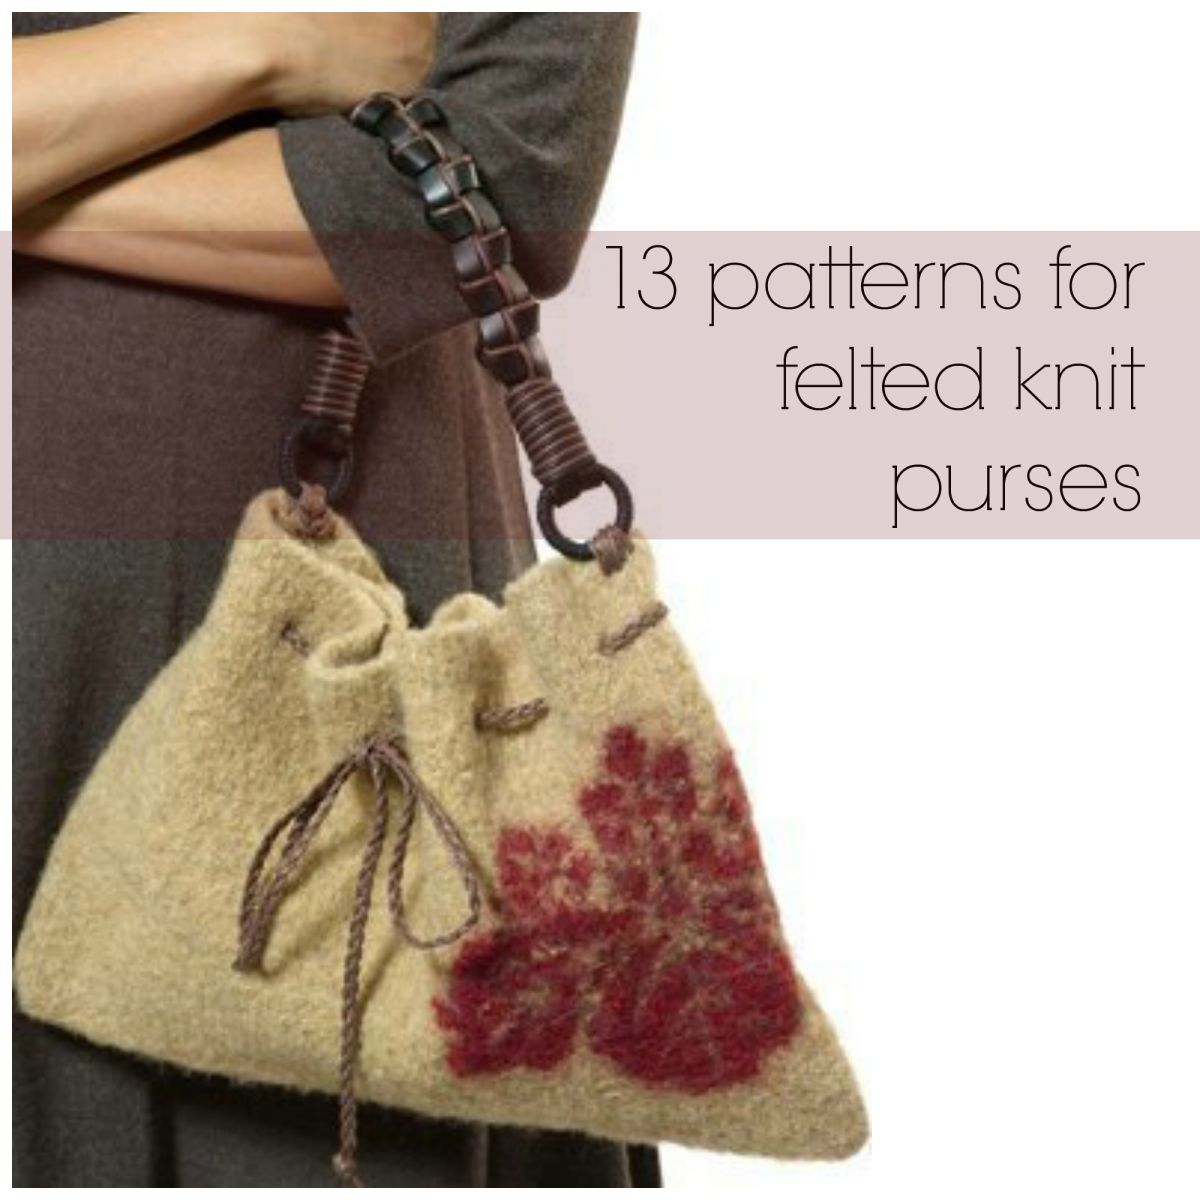 13 patterns for felted knit purses allfreeknitting 13 patterns for felted knit purses bankloansurffo Gallery